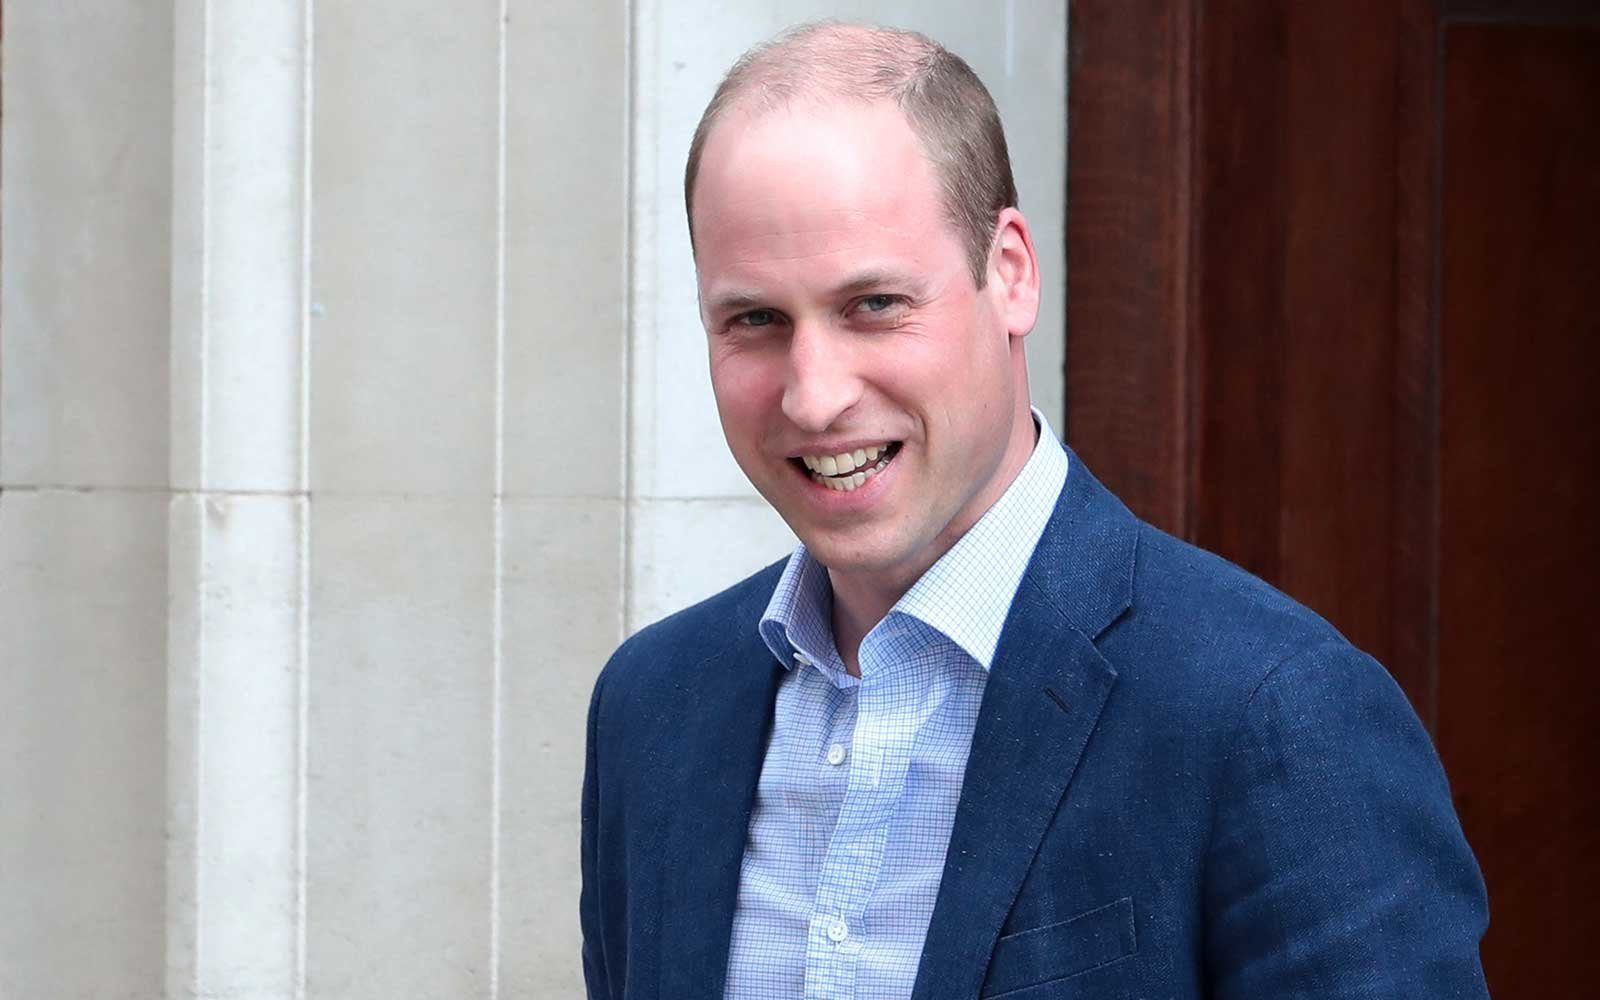 Prince William Just Gave Us A Delightful Royal Baby Update